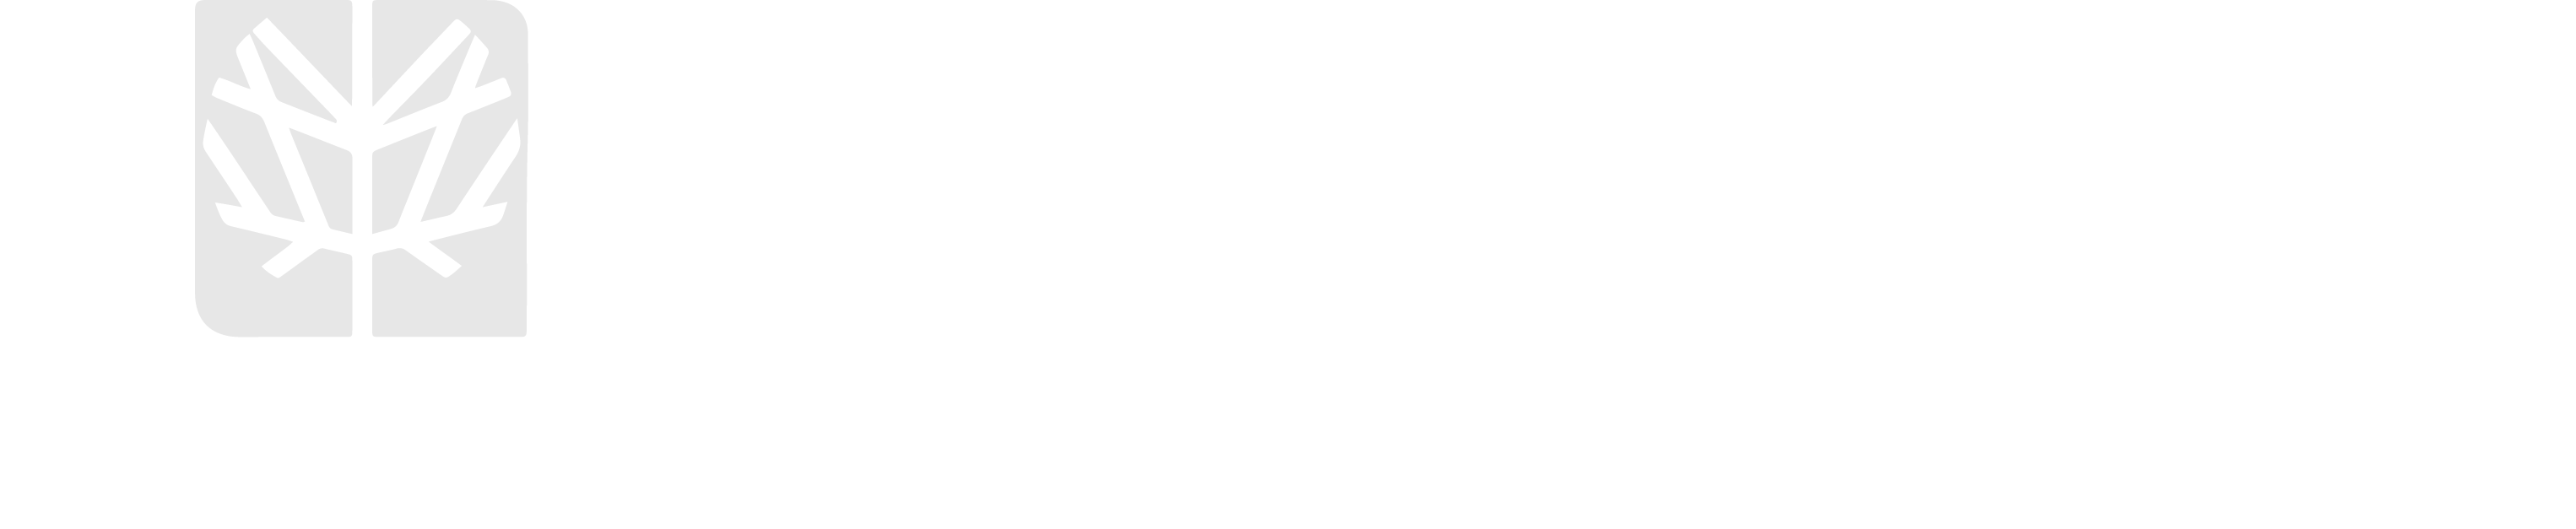 Jim Carpenter Company